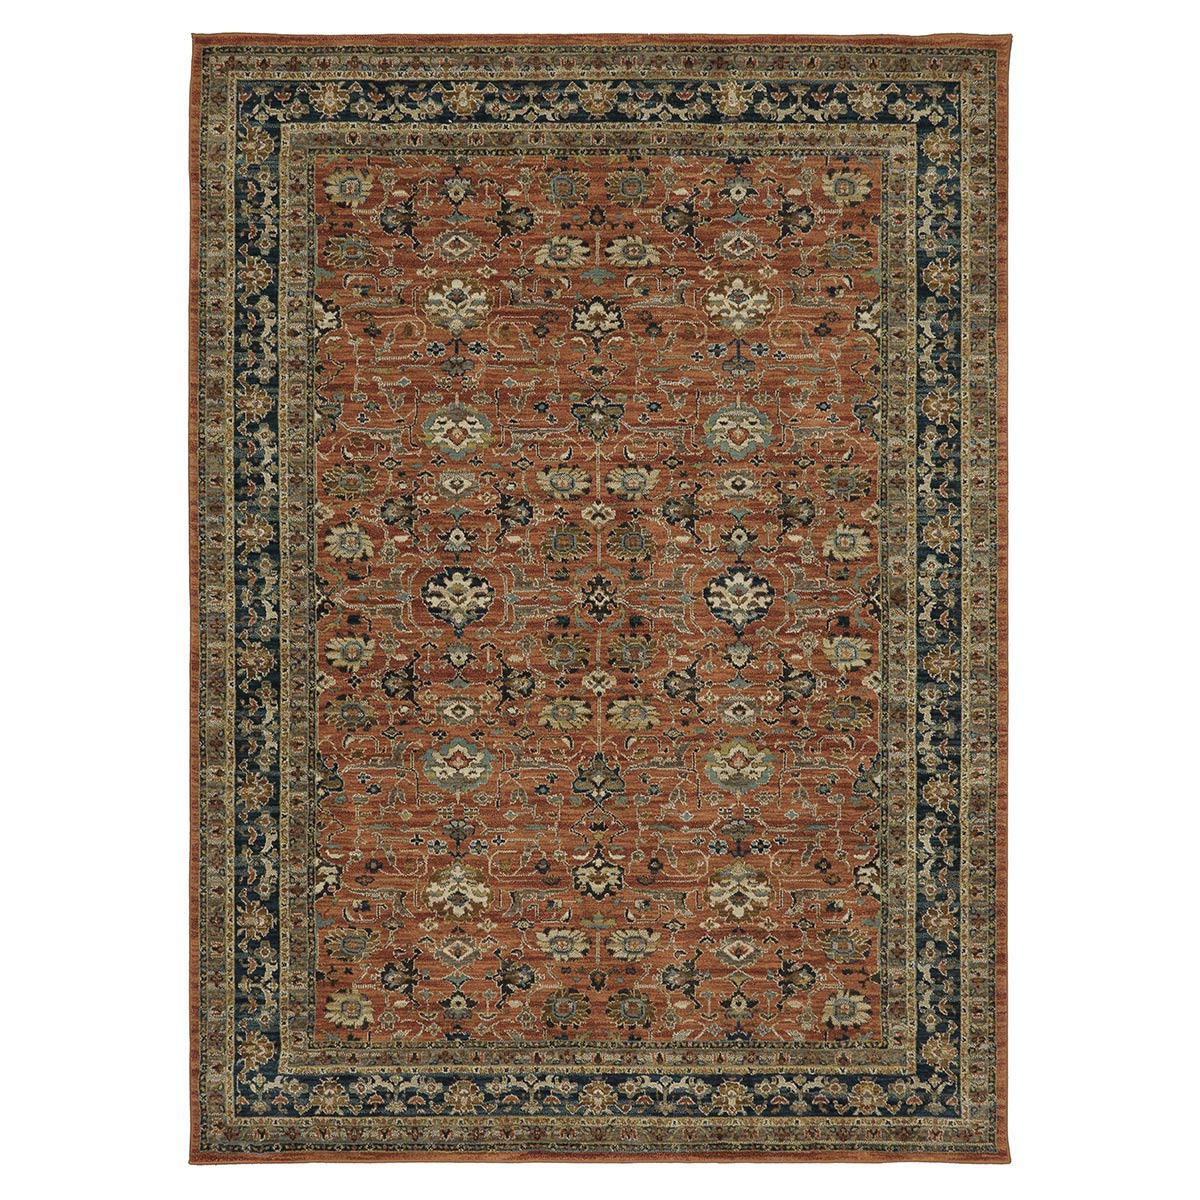 Terracotta Dreams Rug - 10 x 13